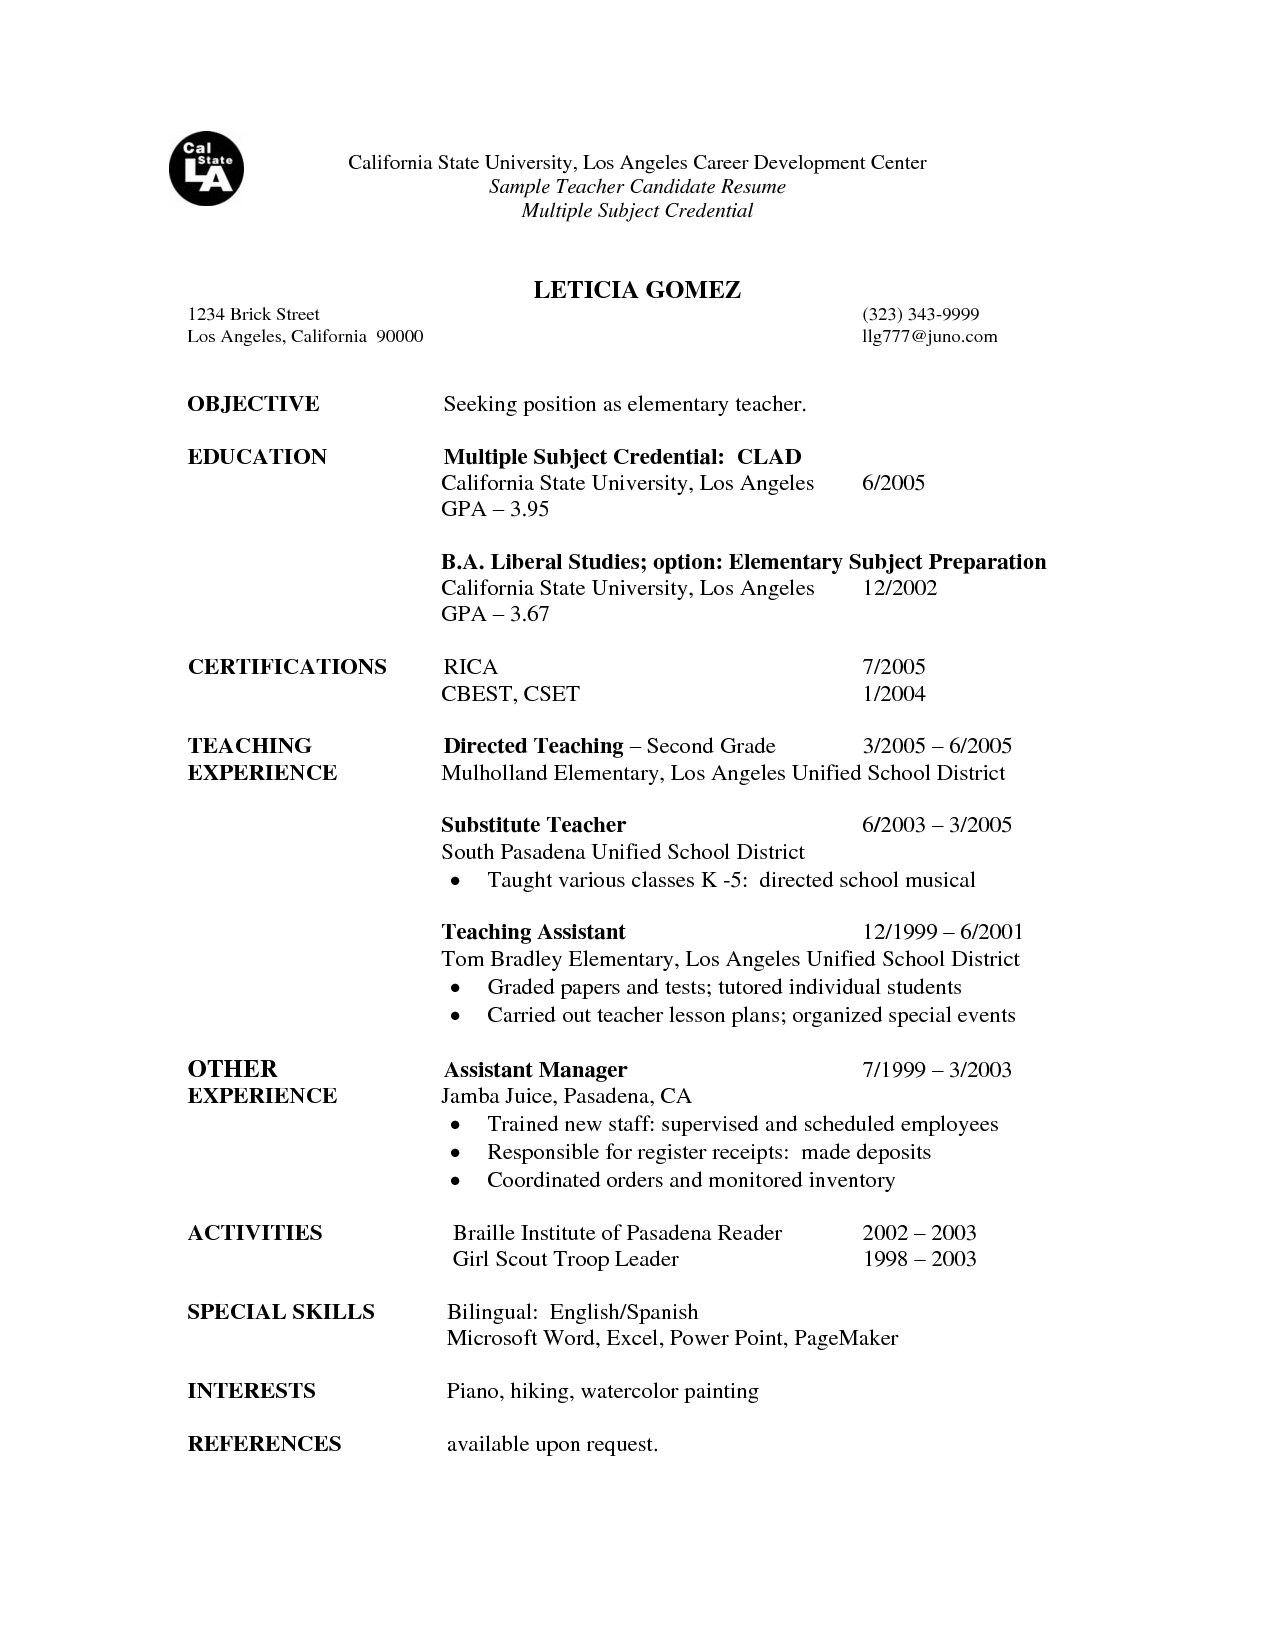 teachers resume Educators Professional Résumés has been